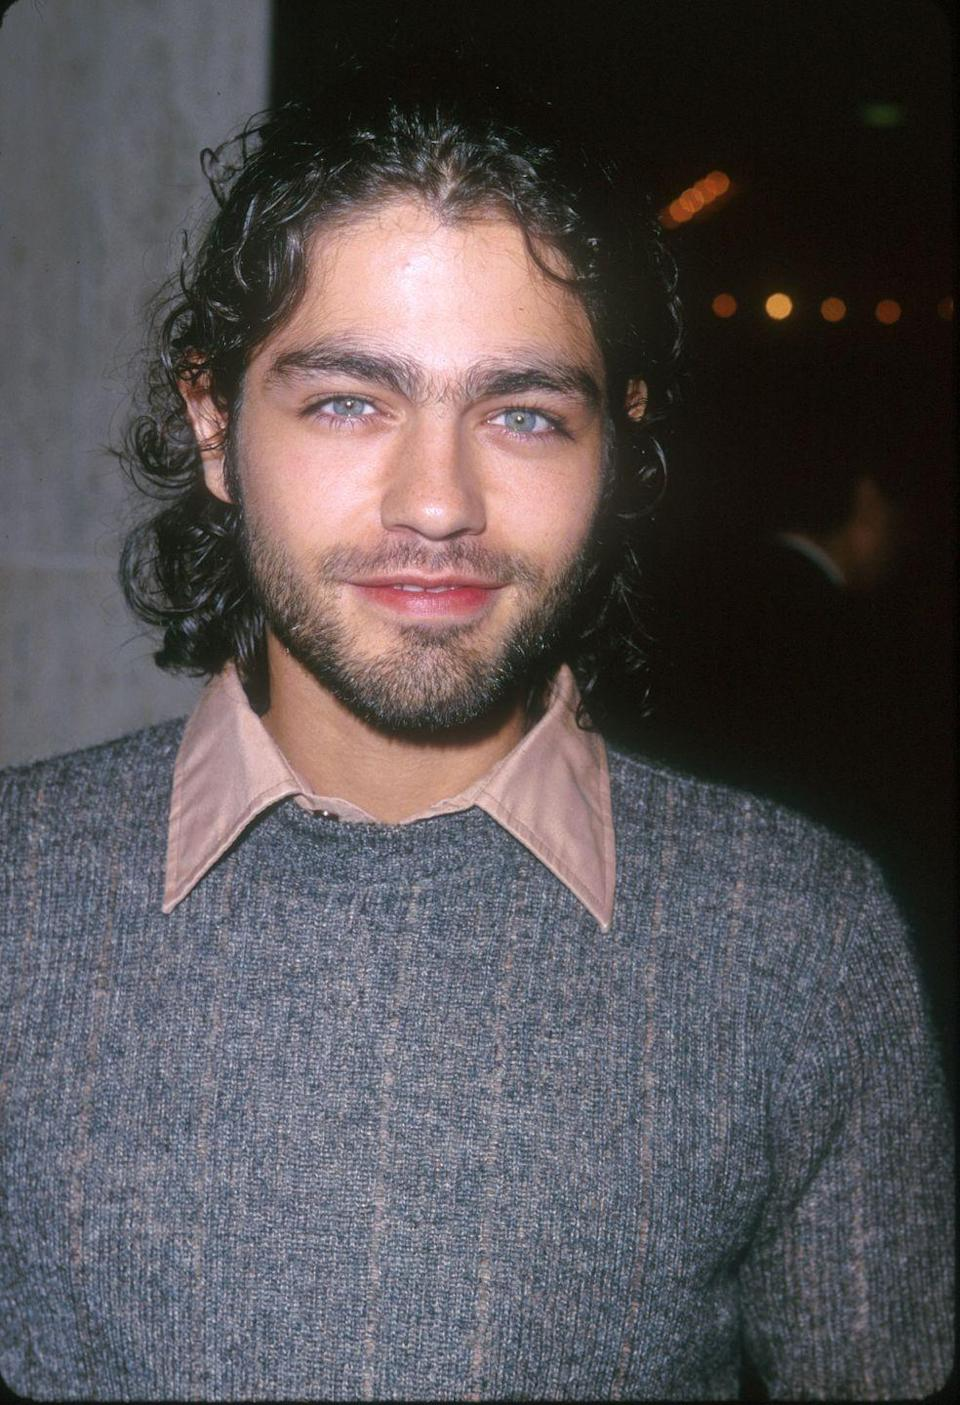 <p>Most people are acquainted with Adrian Grenier's floppy mop hairstyle from his role in <em>Entourage</em>. But you may be surprised that early in his career the actor let his hair grow long to his chin. </p>